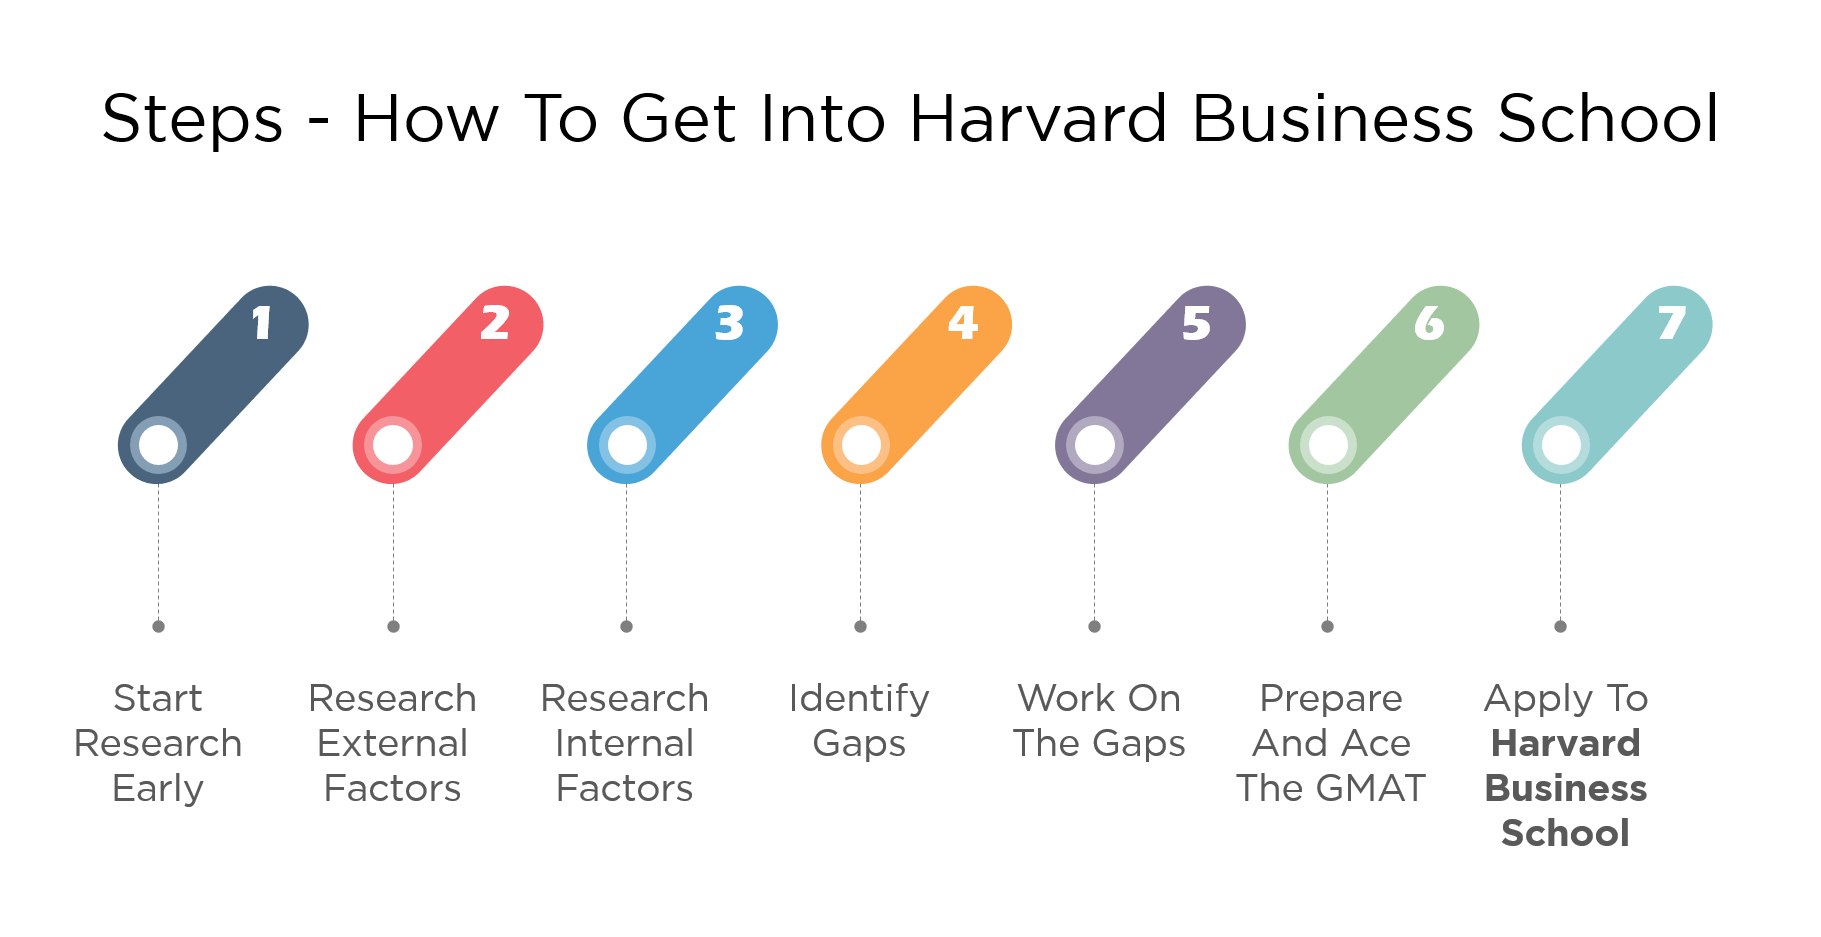 7 Steps - How to get into Harvard Business School (HBS) MBA